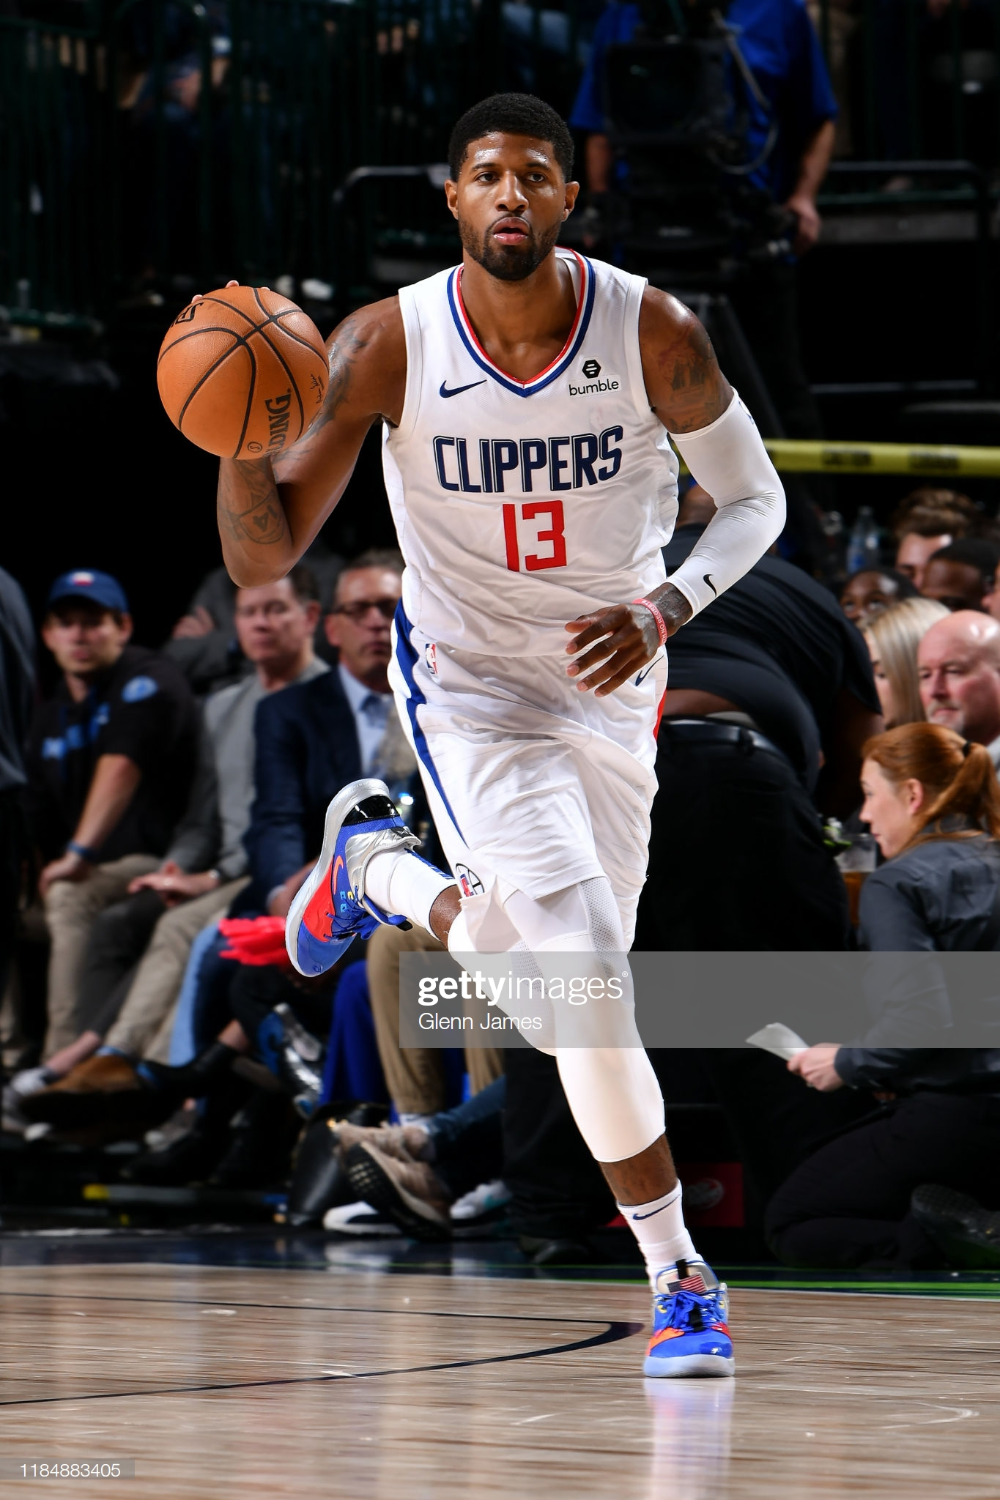 Paul George Of The La Clippers Handles The Ball Against The Dallas In 2020 Paul George La Clippers Basketball Players